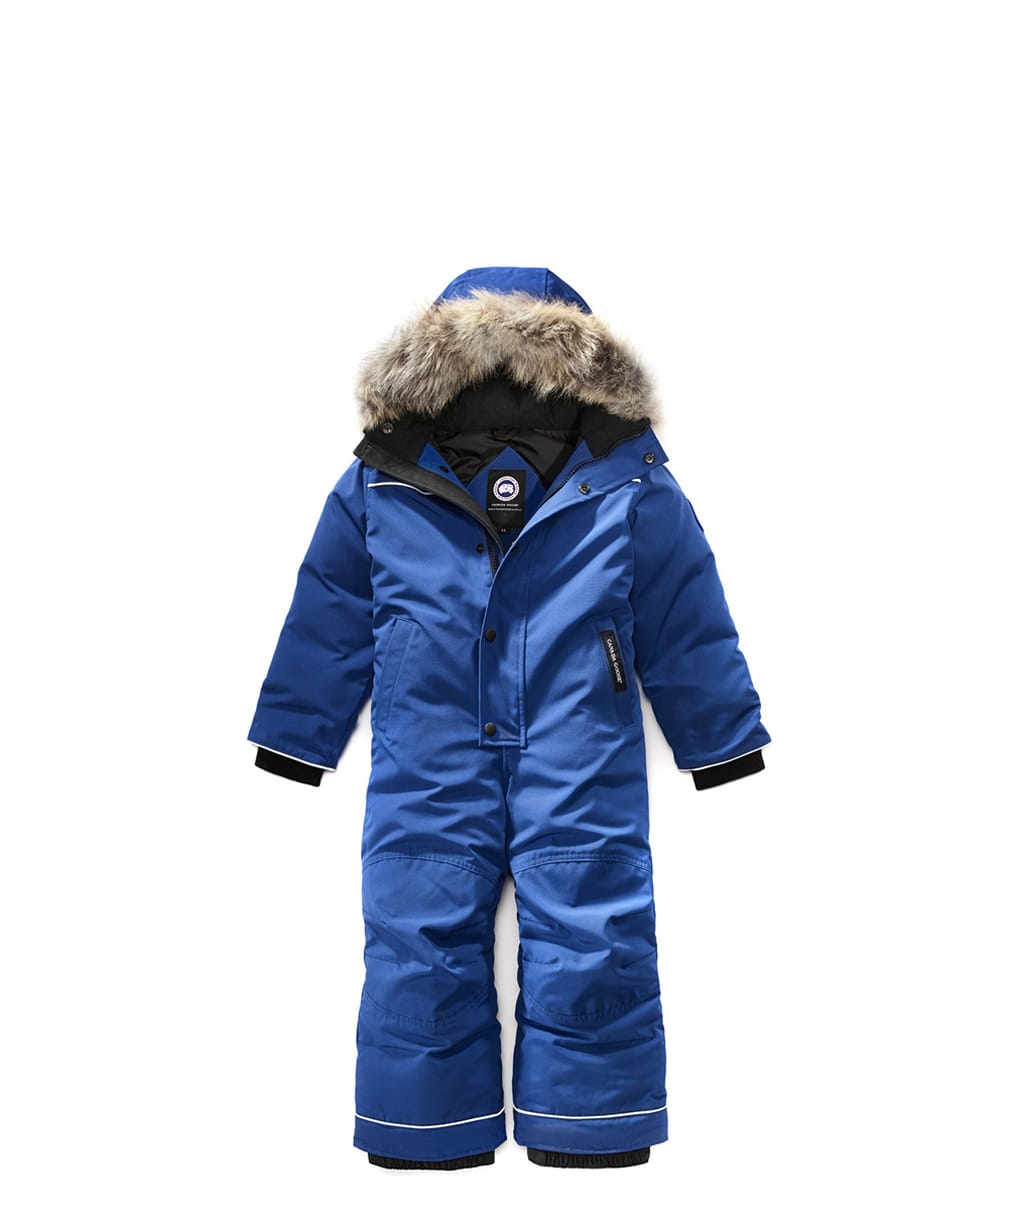 GRIZZLY SNOWSUIT